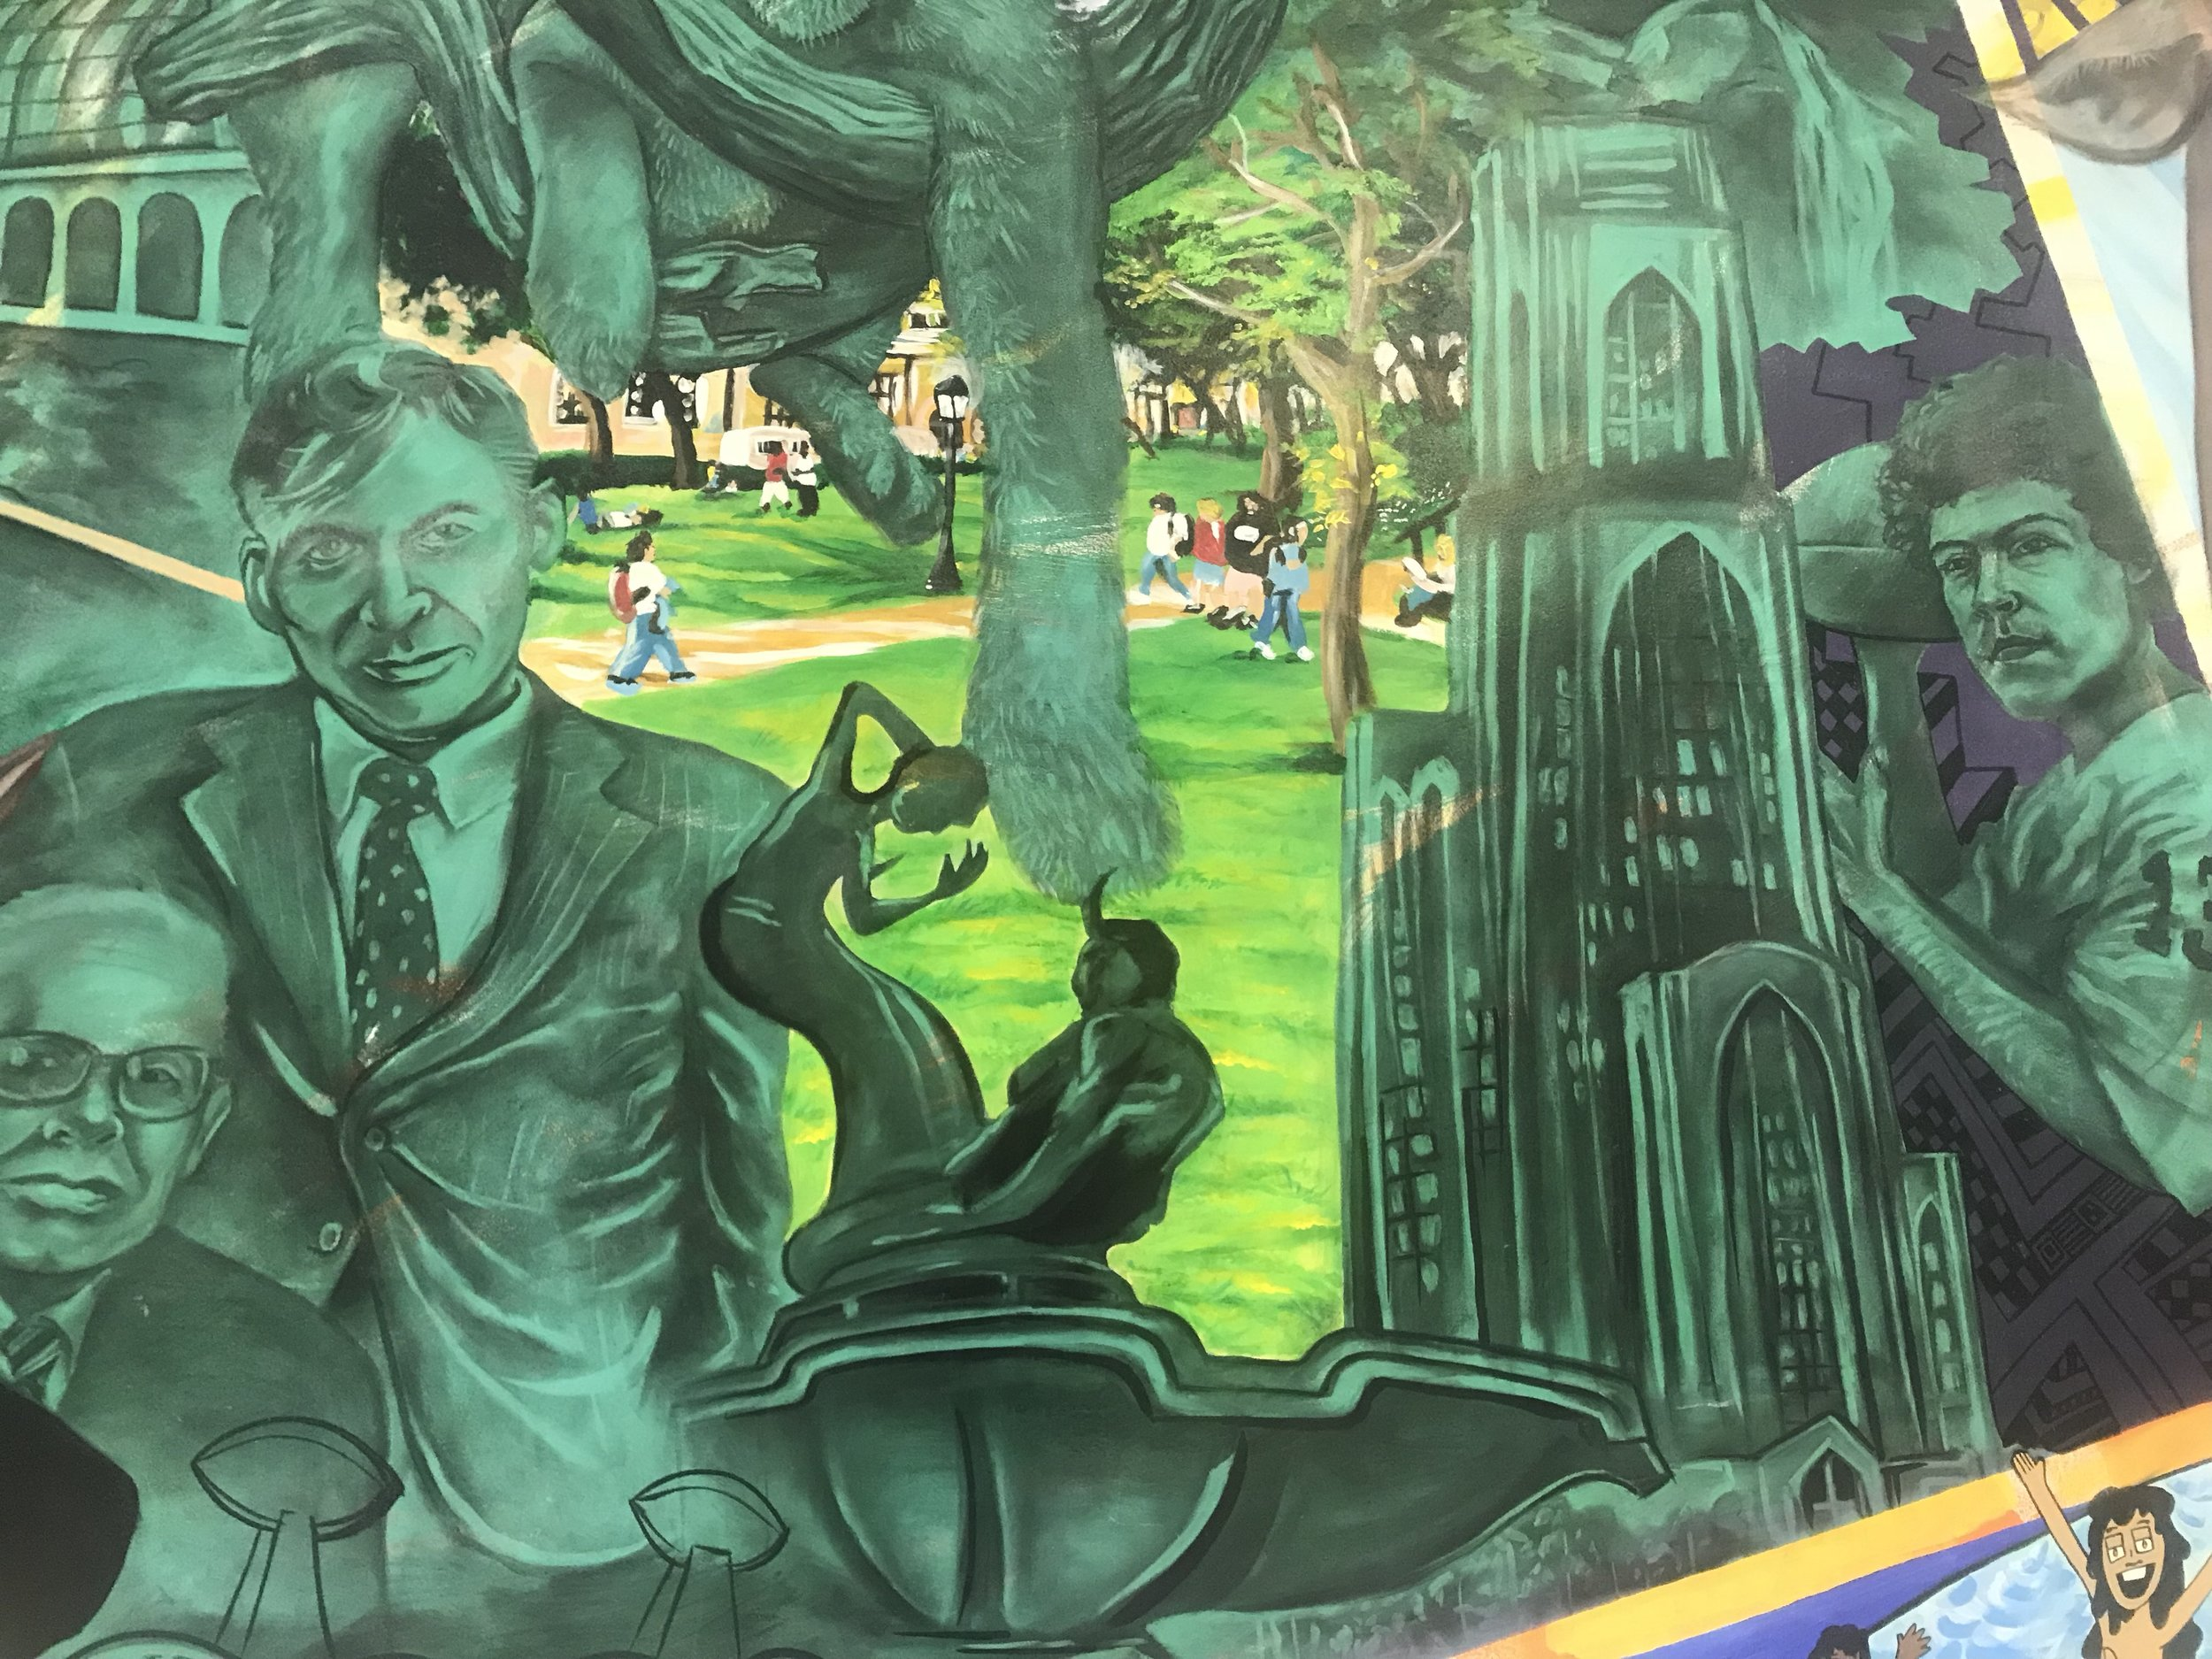 Monroeville Mall Mural (detail) 2003 by Kyle Holbrook and Billy Solomon